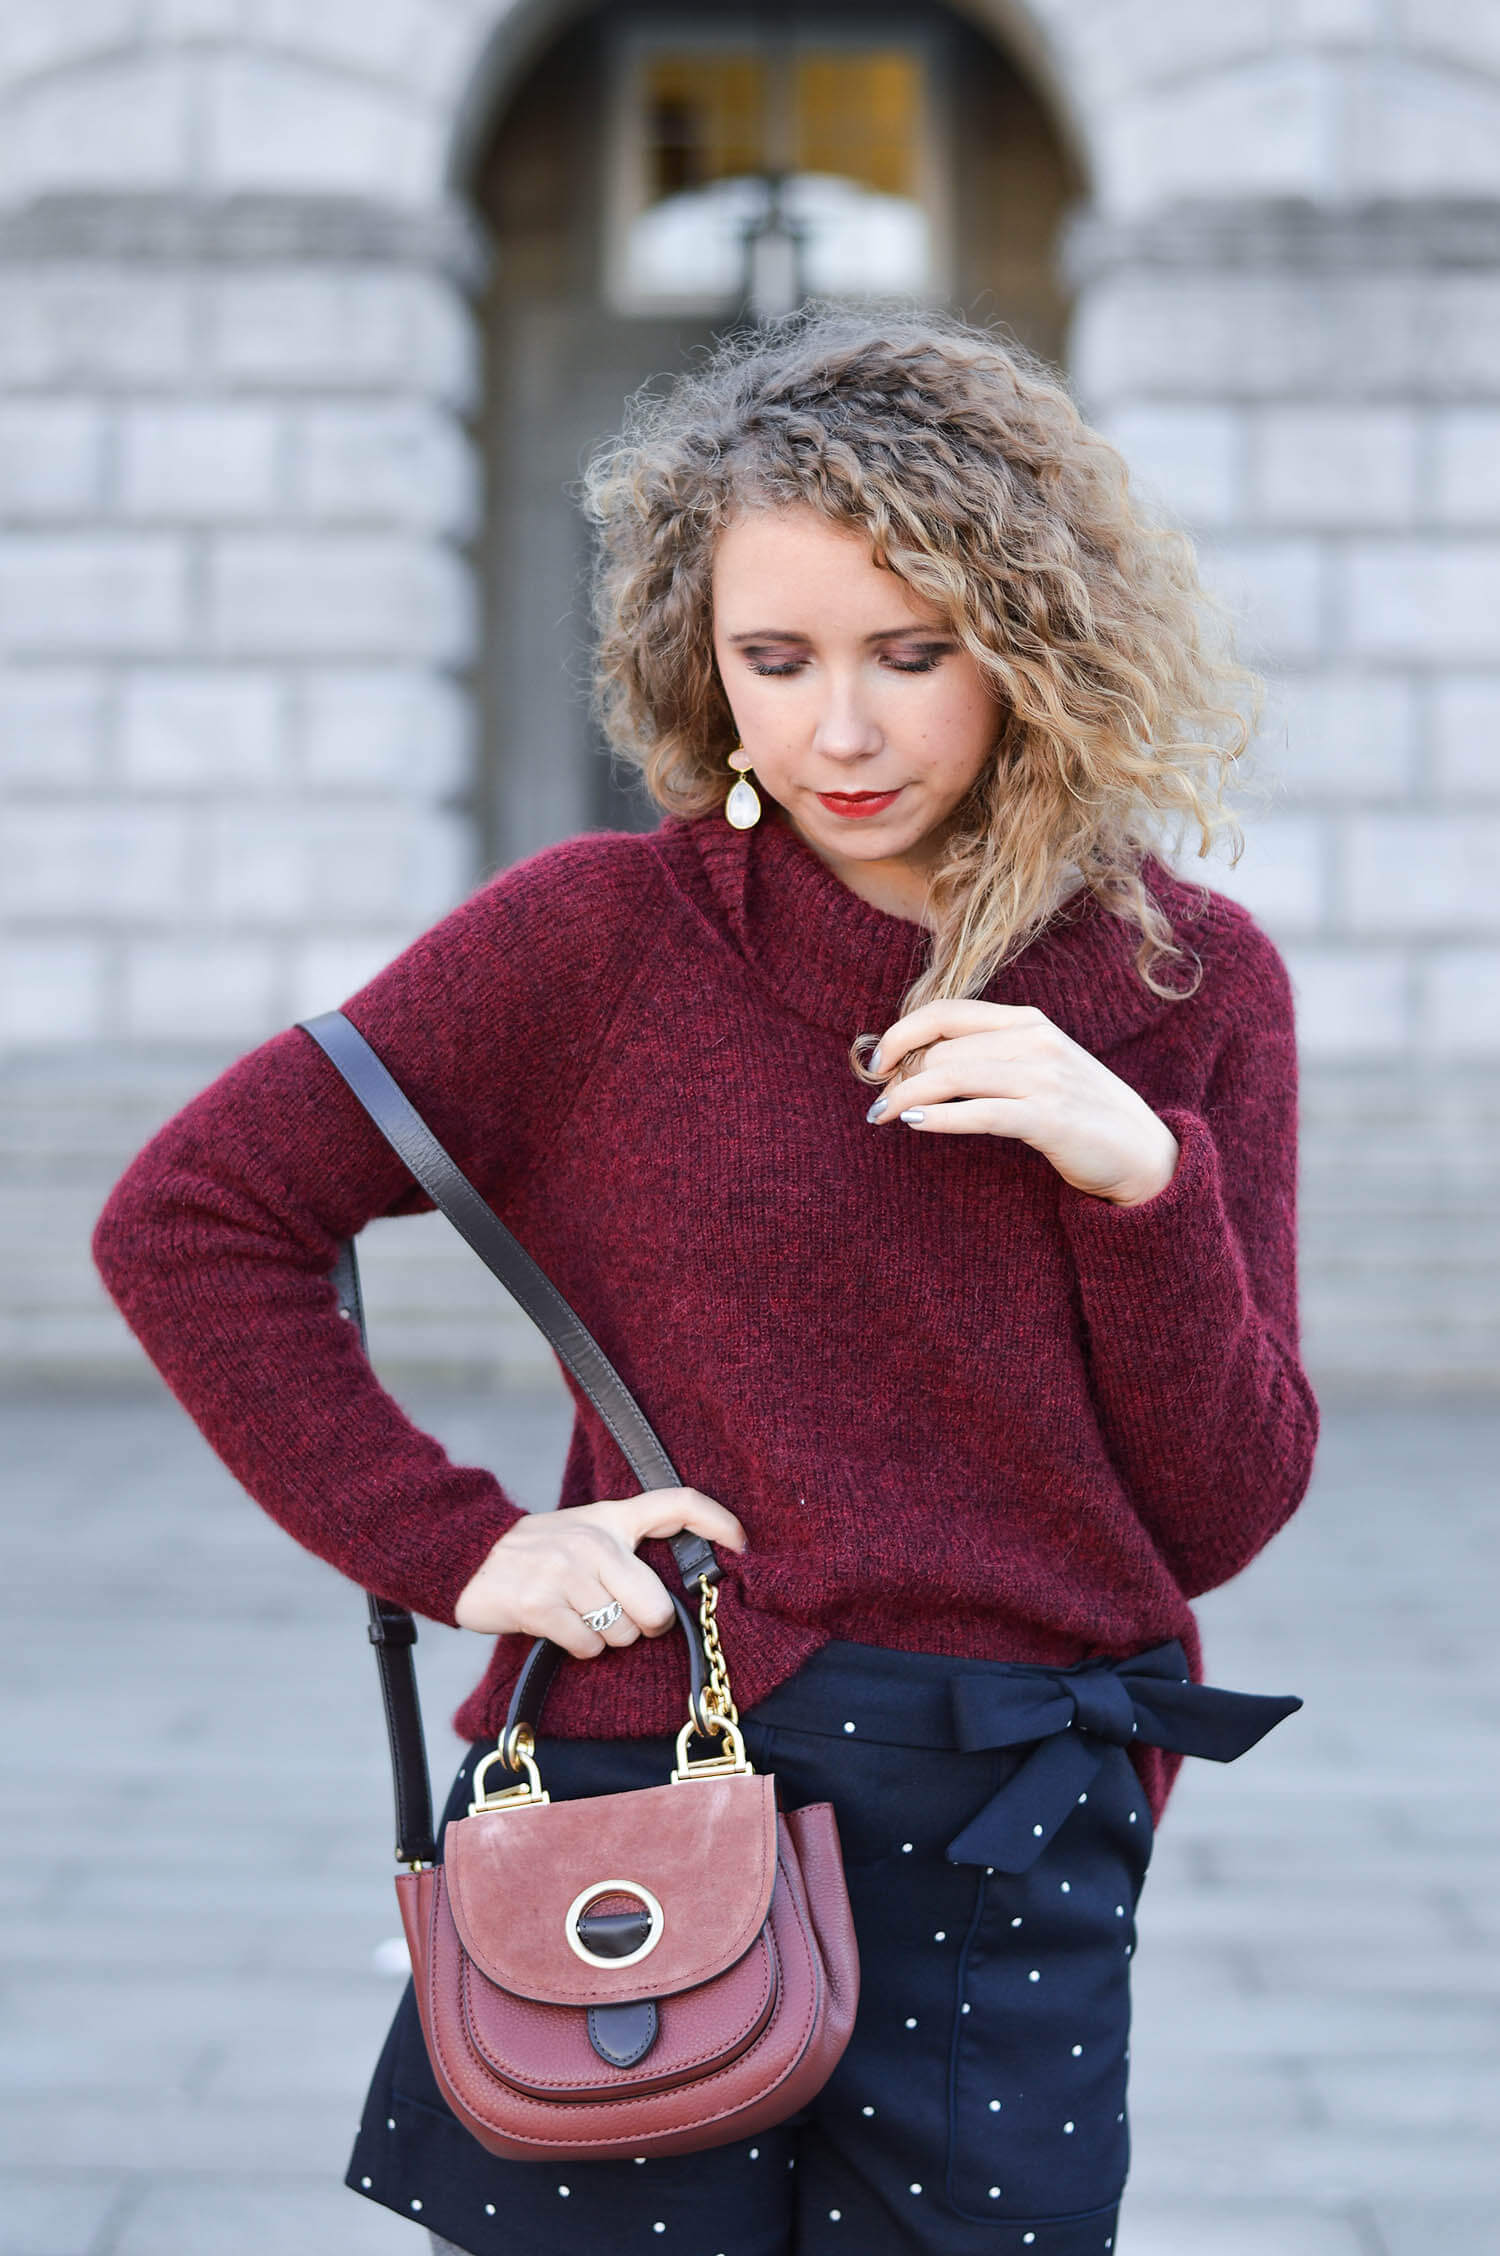 Kationette Fashionblog Outfit: Michael Kors saddle bag, Wool Sweater, Hotpants, Peter Kaiser Pumps, curls